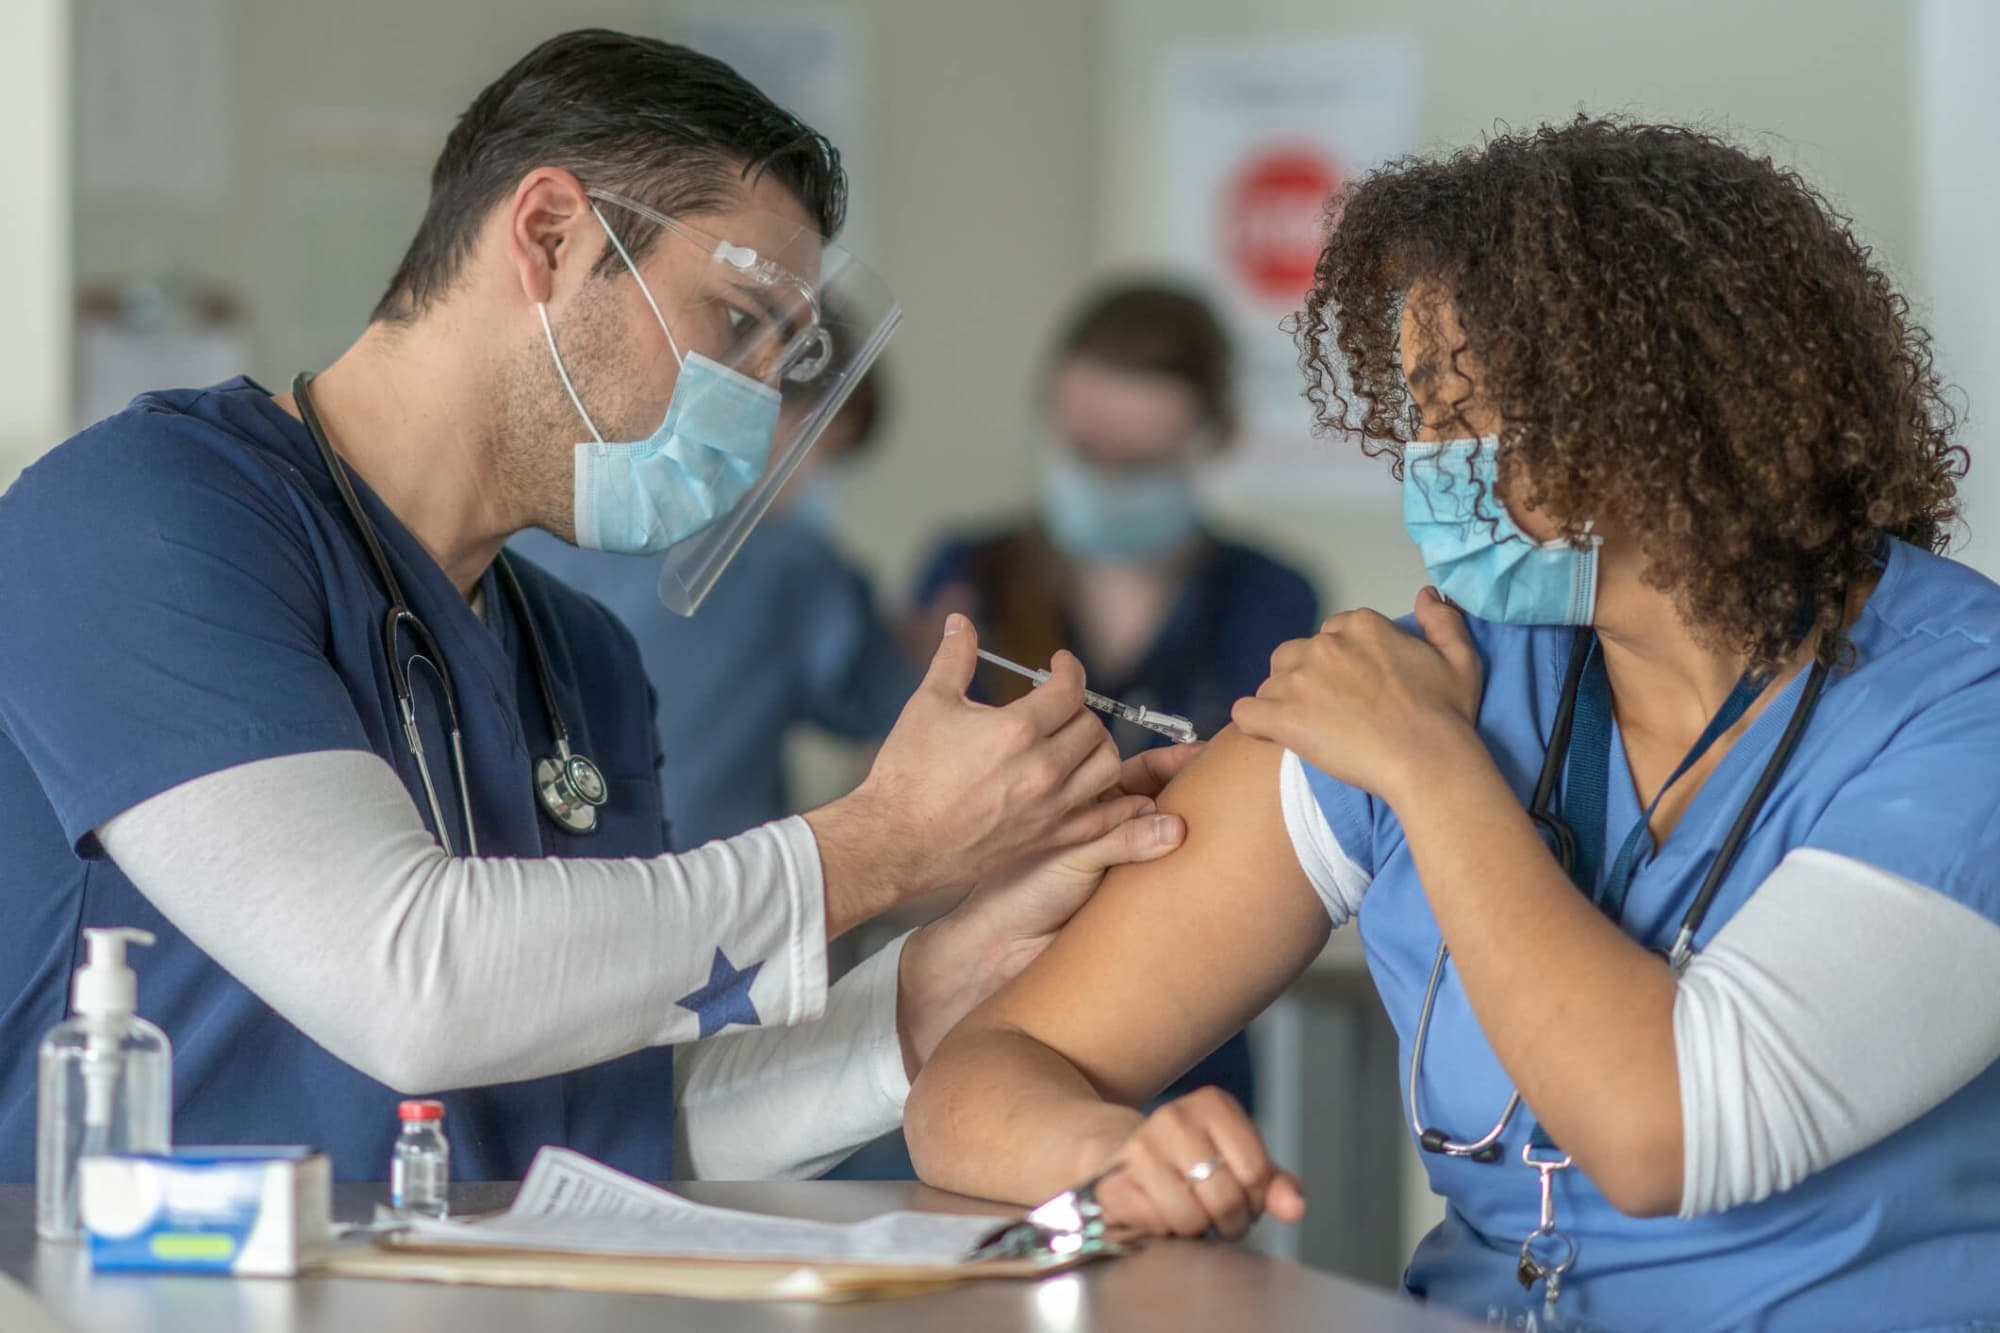 Do Nursing Students Need the COVID-19 Vaccine to Return to School?